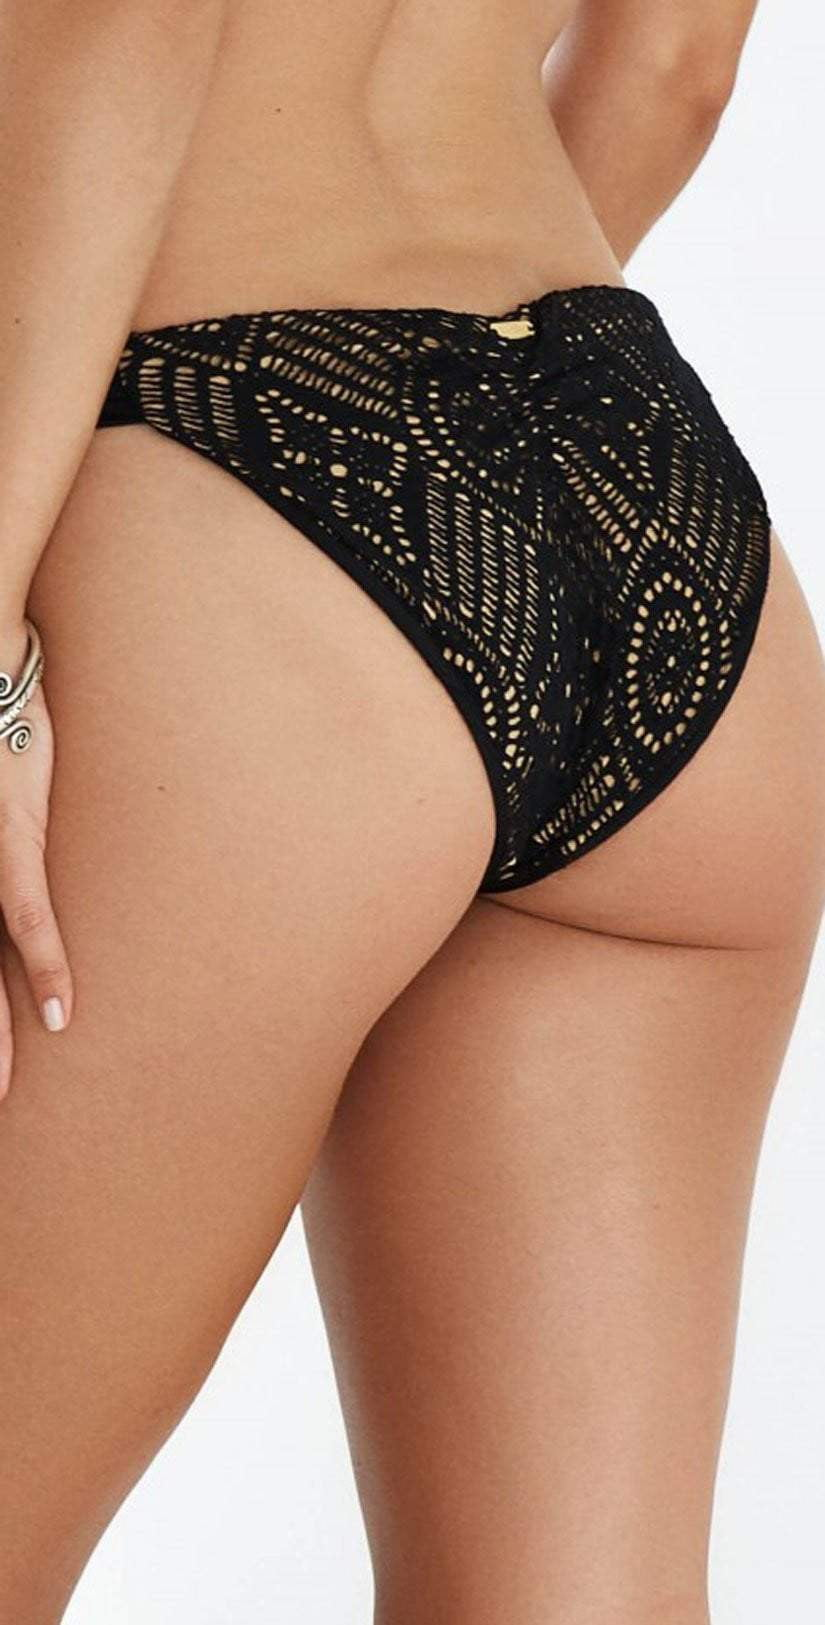 Beach Bunny Love Me Like You Do Sweetheart Bottom In Black B17113B5-BLCK: